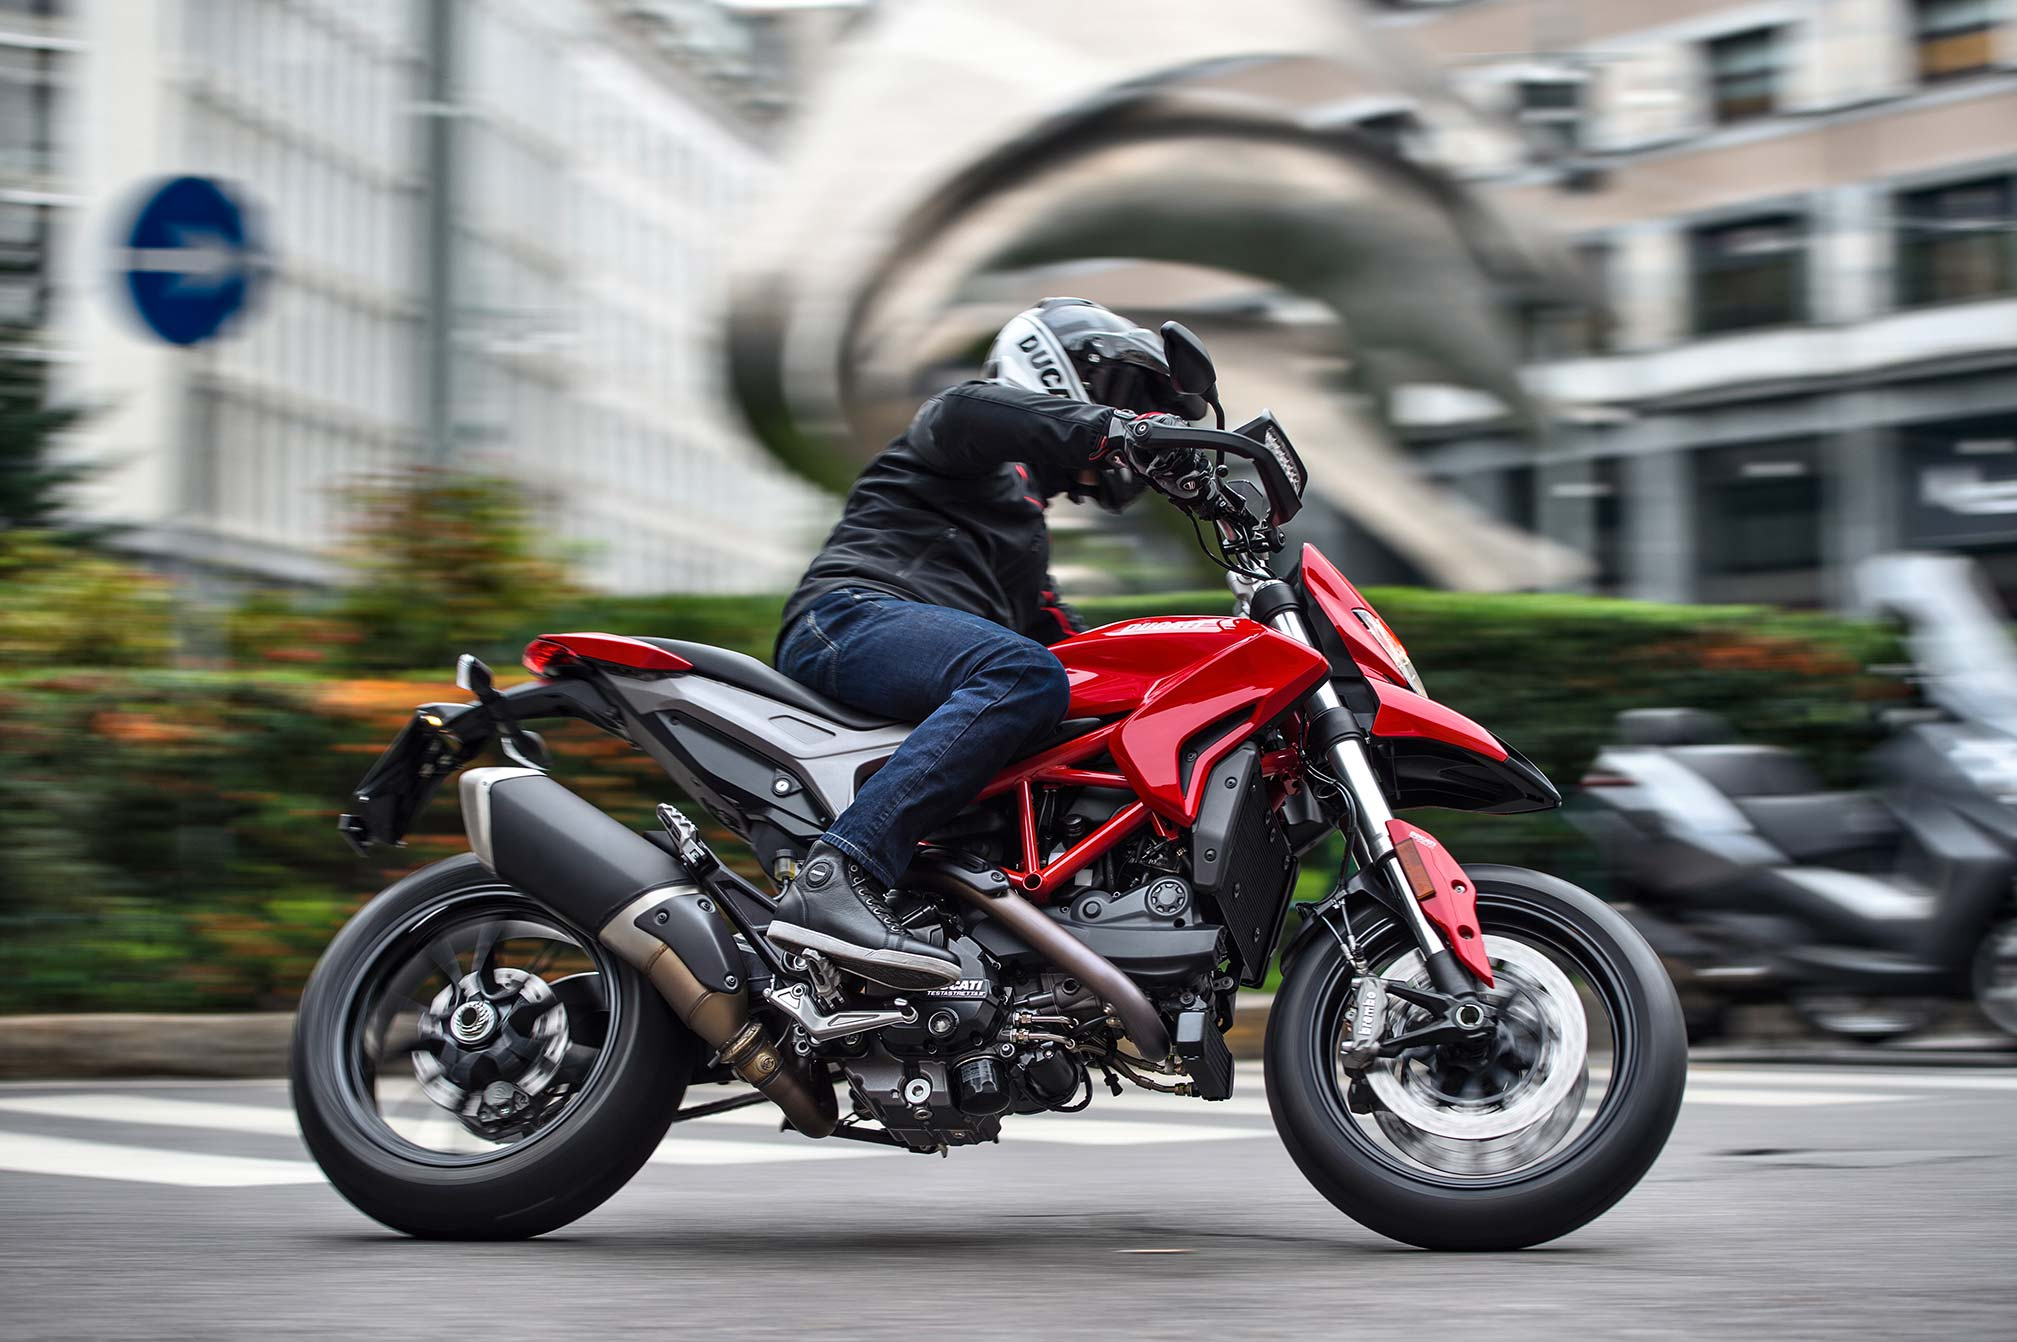 2017 Ducati Hypermotard 939 Review